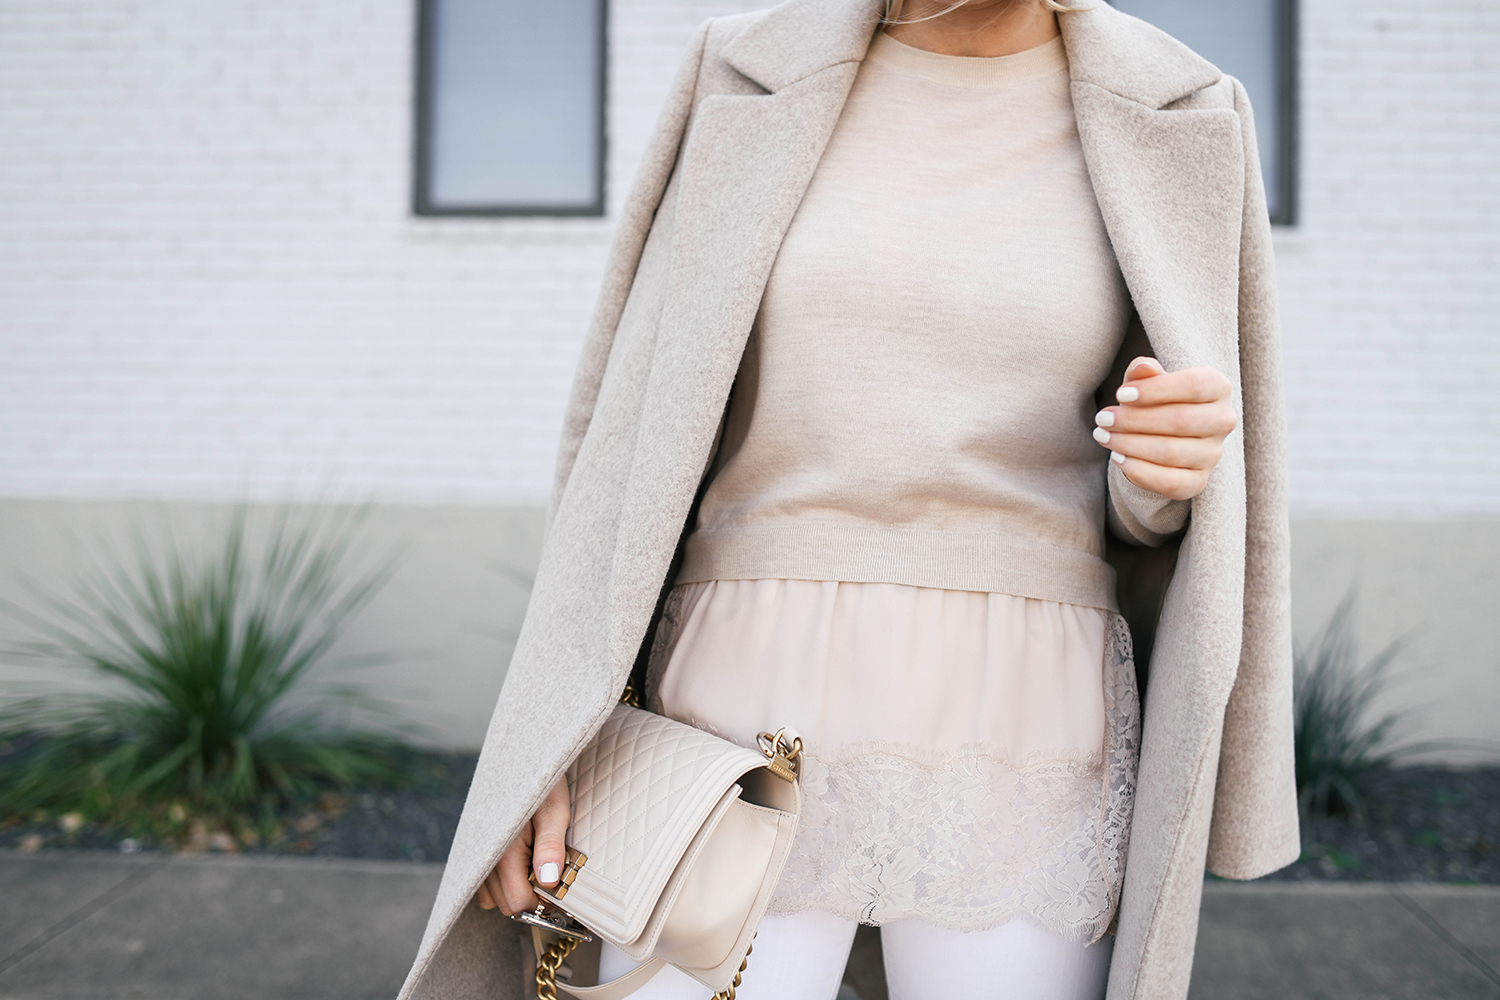 659bbc7447 WHITE JEANS THREE WAYS // HOW TO TRANSITION THEM FROM WINTER TO SPRING